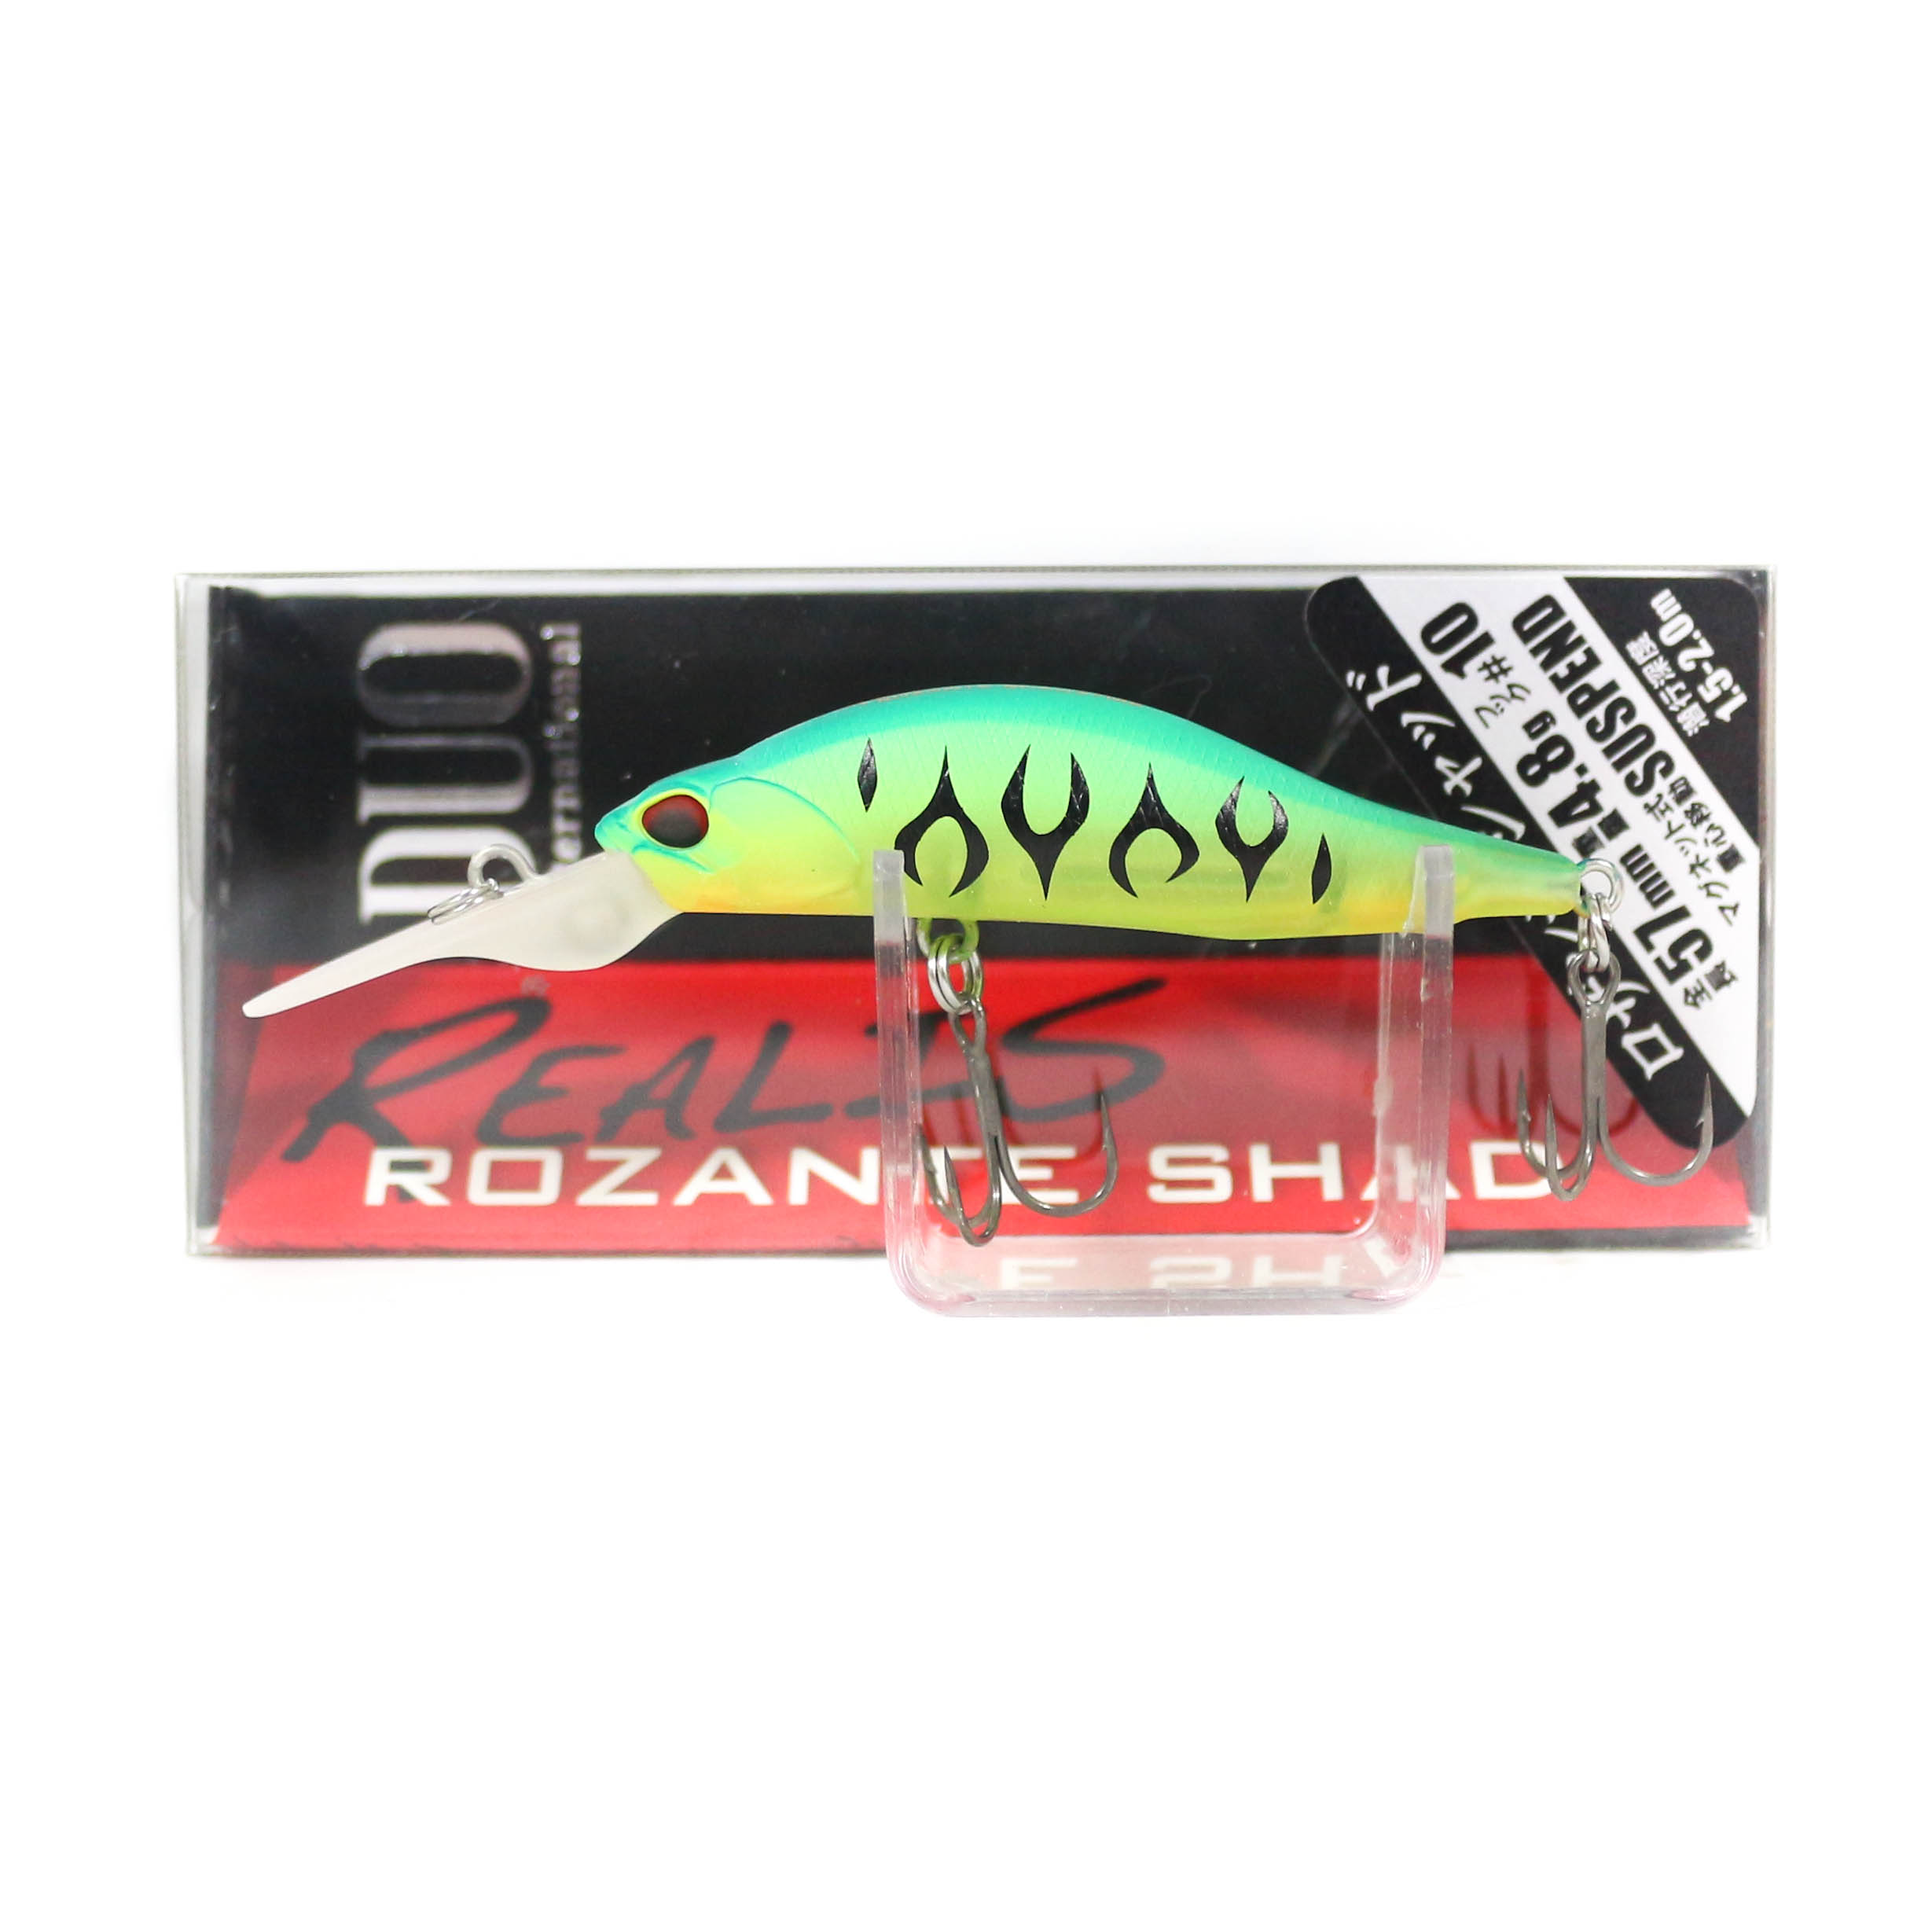 Duo Realis Rozante Shad 57 MR Suspend Lure CCC3263 (9300)